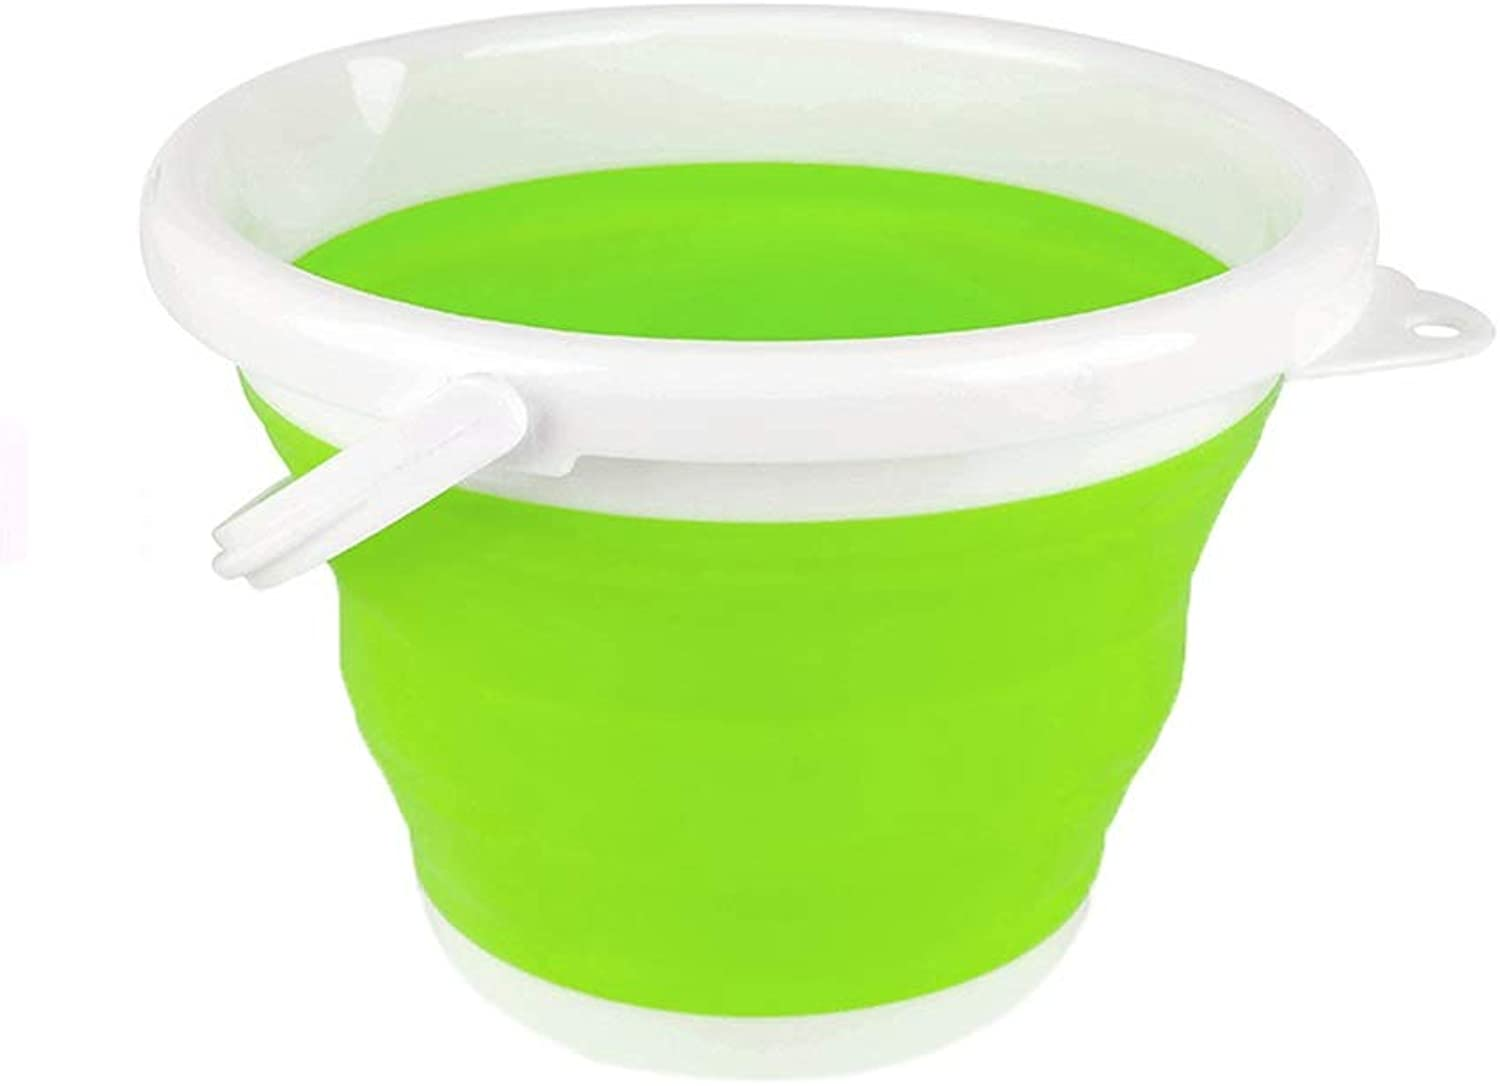 FW Folding Bucket, MultiStandard Easy to Store Outdoor Hiking Fishing Camping Wash Basin, Three colors Optional